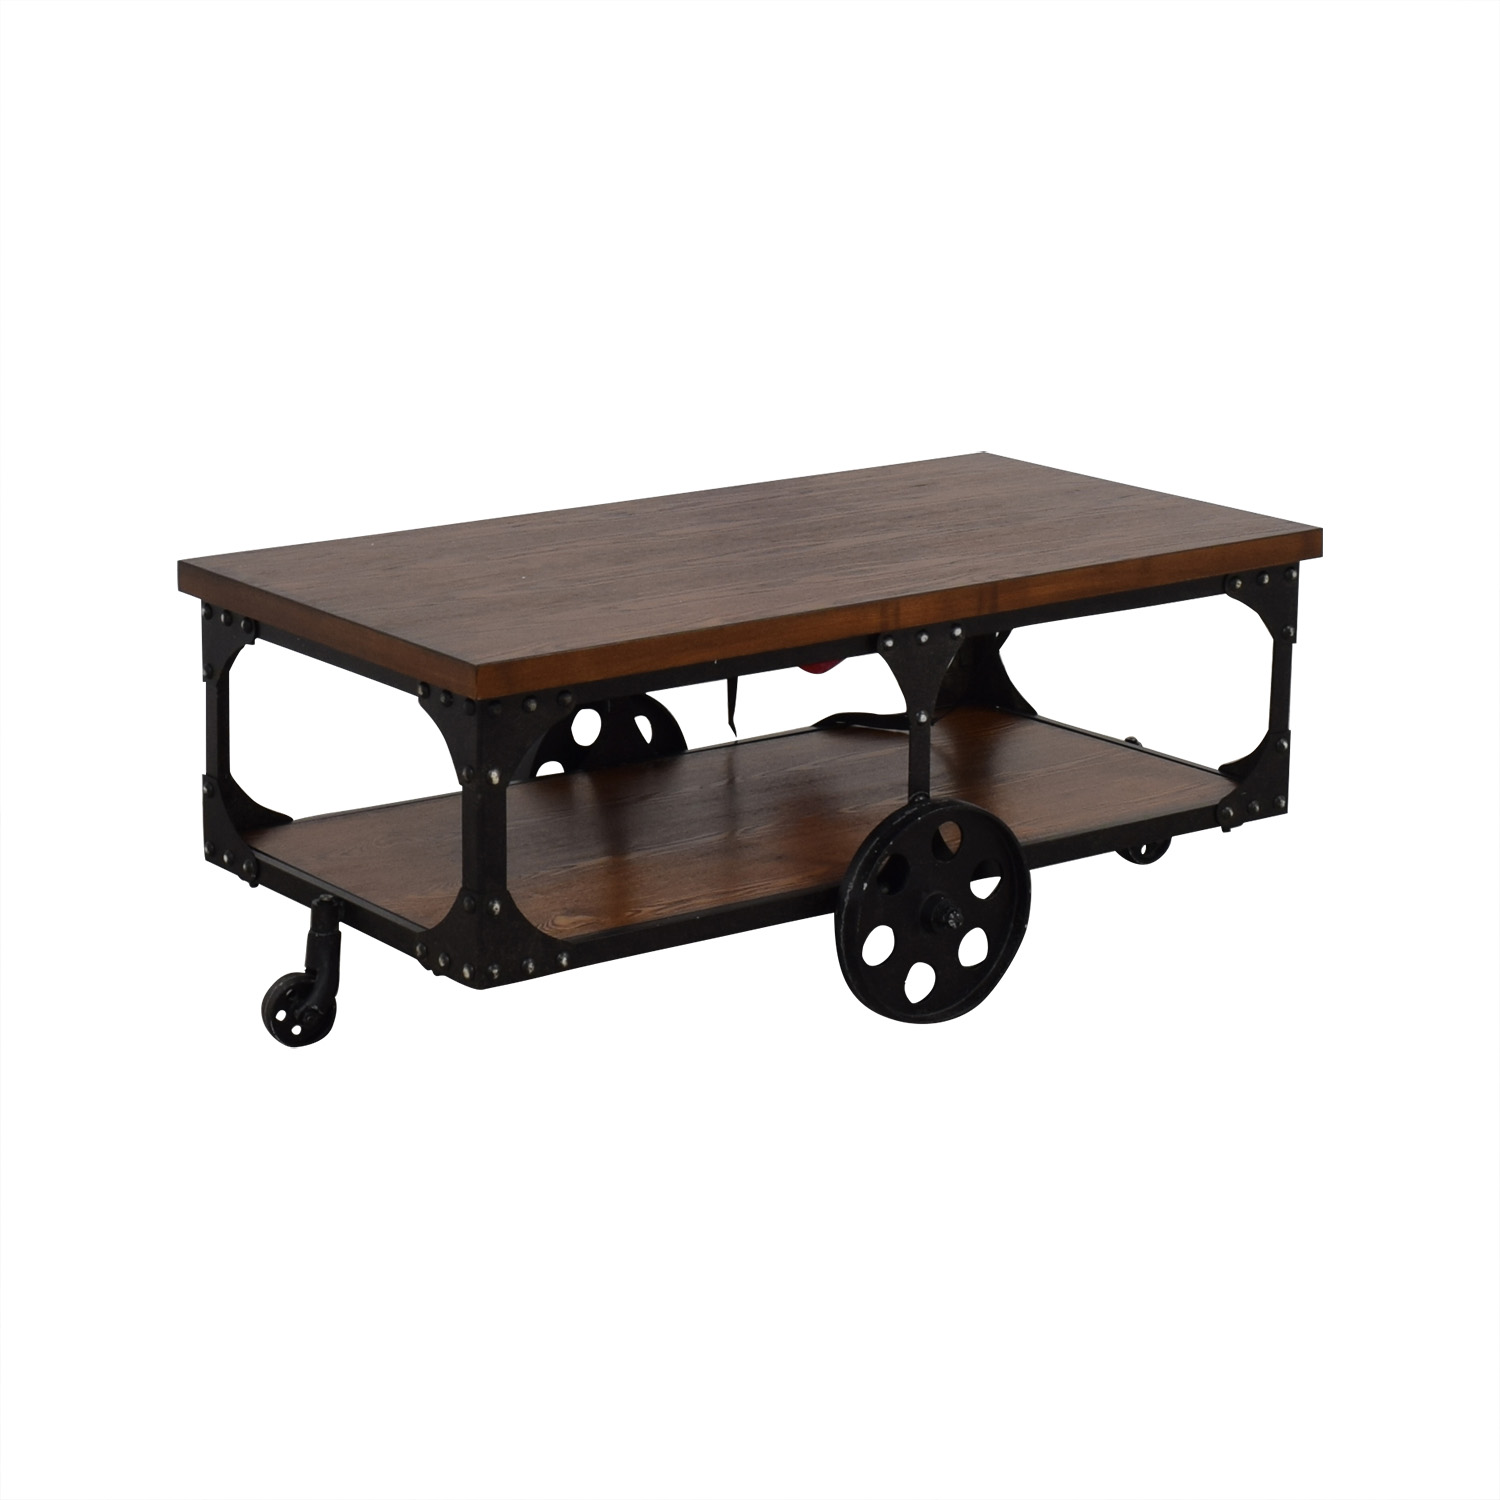 Coaster Fine Furniture Coaster Fine Furniture Coffee Table with Casters dimensions